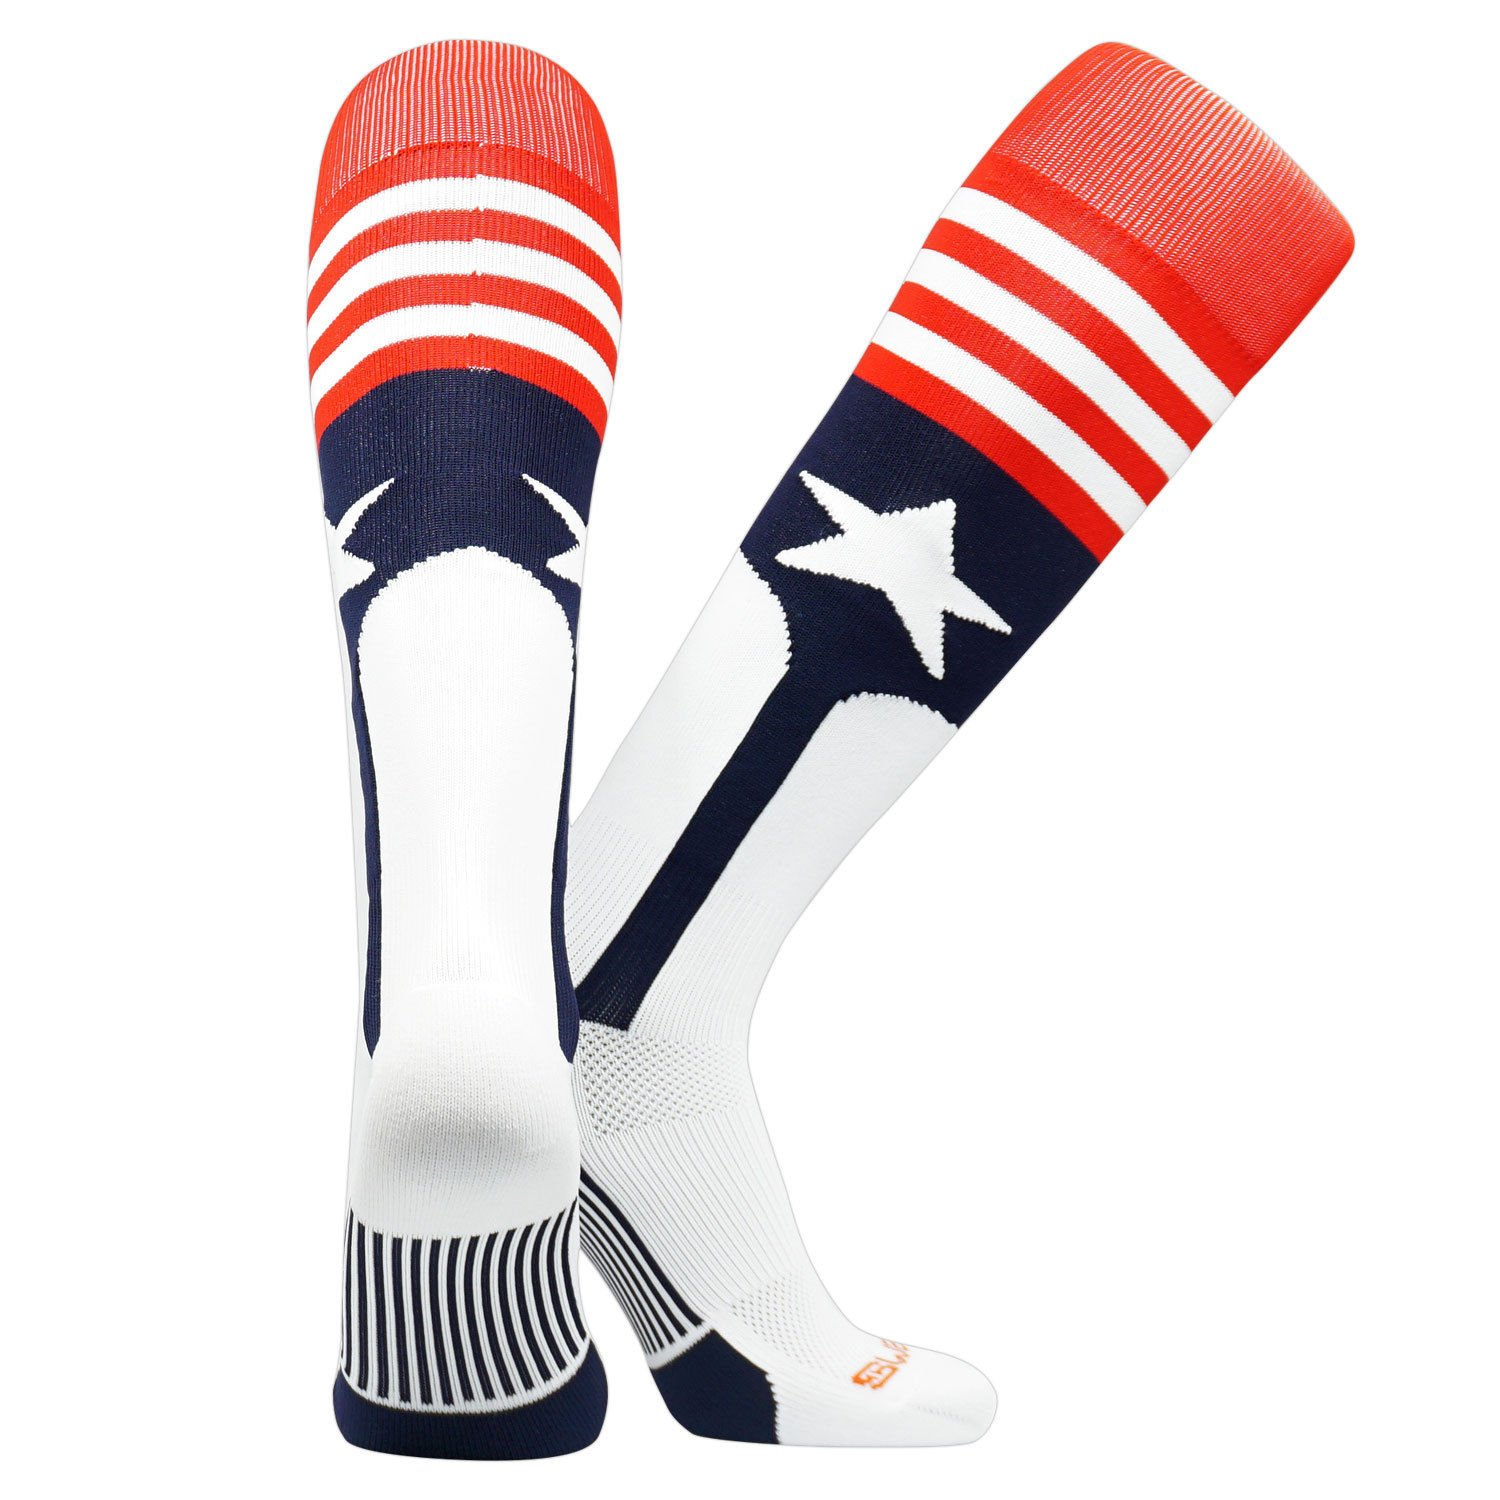 Swanq Stars and Stripes USA Baseball Stirrup Socks Made by TCK (Medium (USM 6-9, USW 7-10)) by Swanq